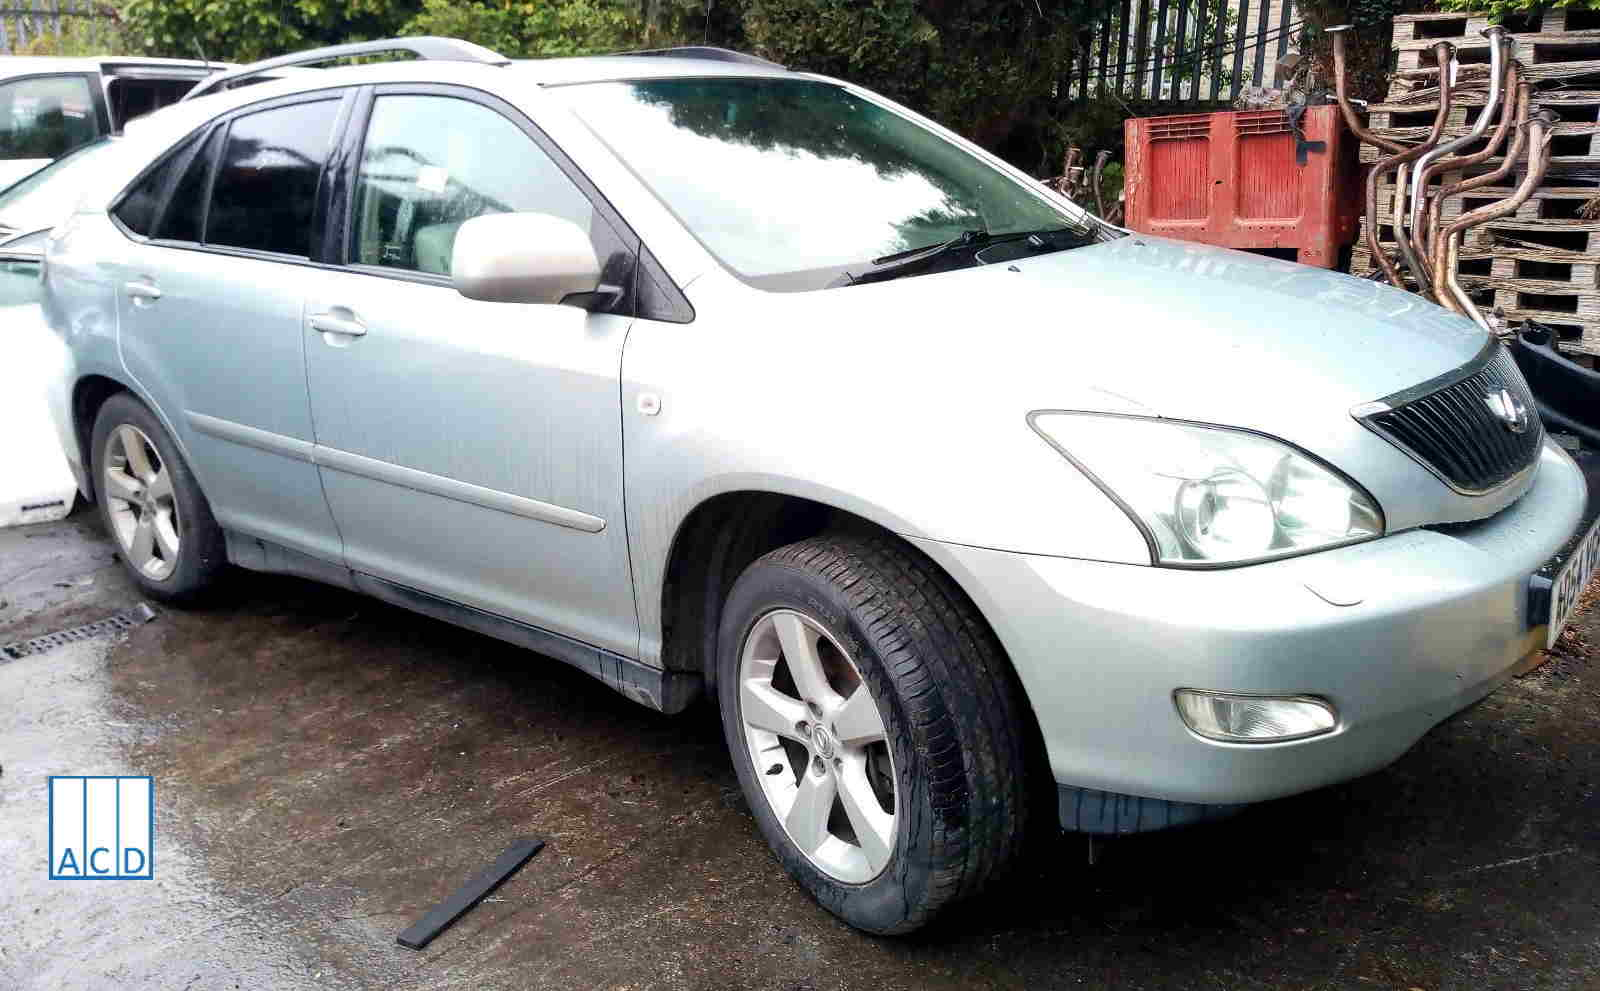 Lexus RX300 3.0L Petrol 4 - Speed Automatic 2004 #3140 01